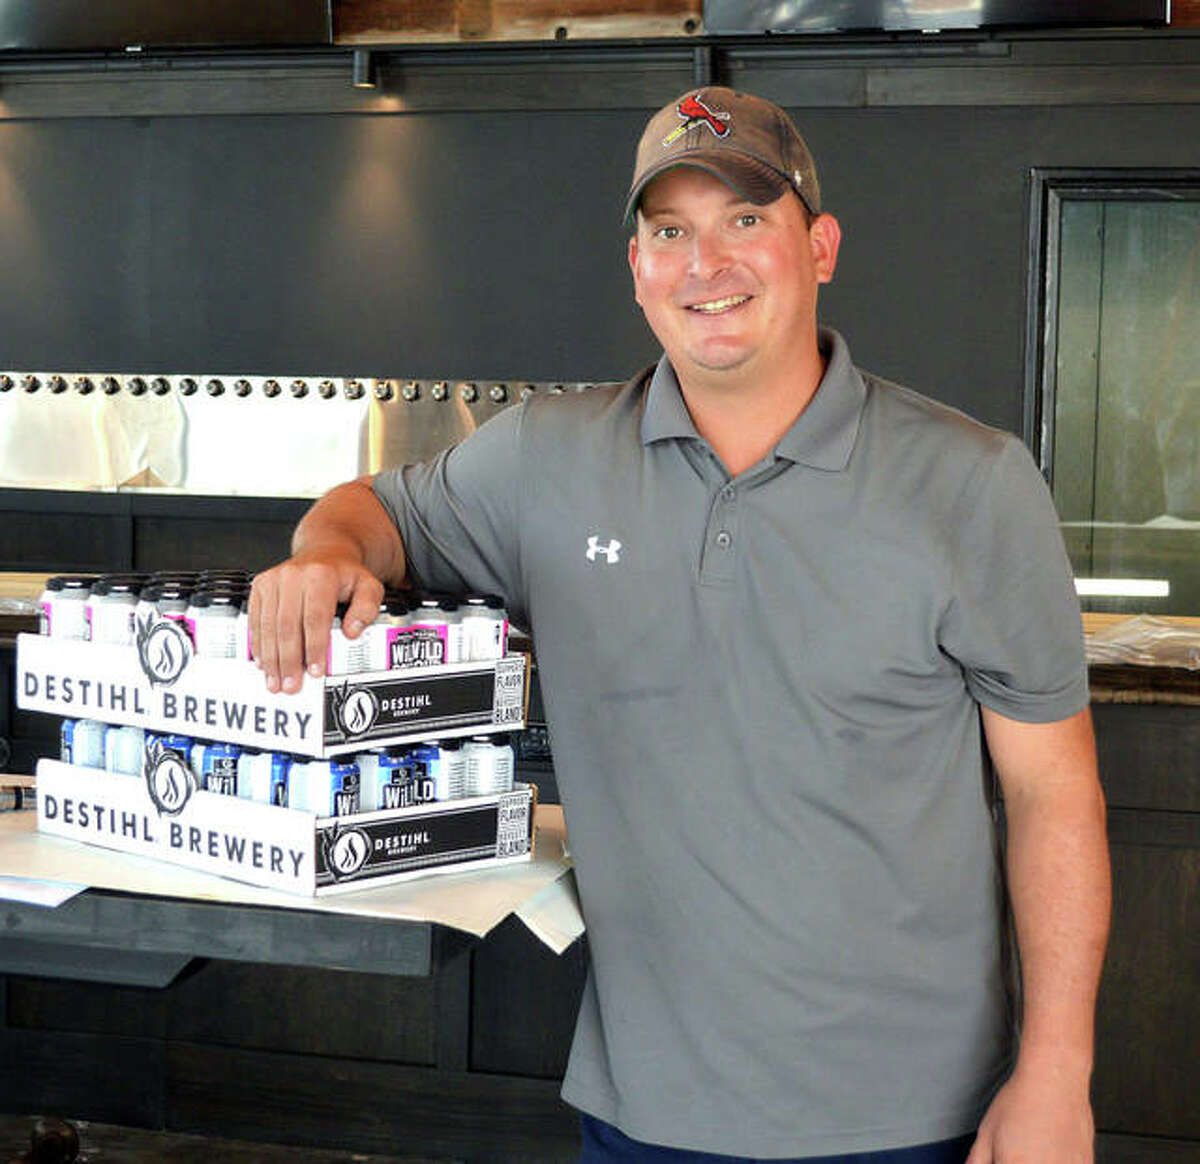 Ryan High, owner of Global Brew Tap House in Edwardsville, shows some of the first cases of beer delivered to the new Global Brew location at 2320 Plum St. in the Ironworks development. The bar will move to its new location after the original location, at 112 S. Buchanan St., closes on Sunday.